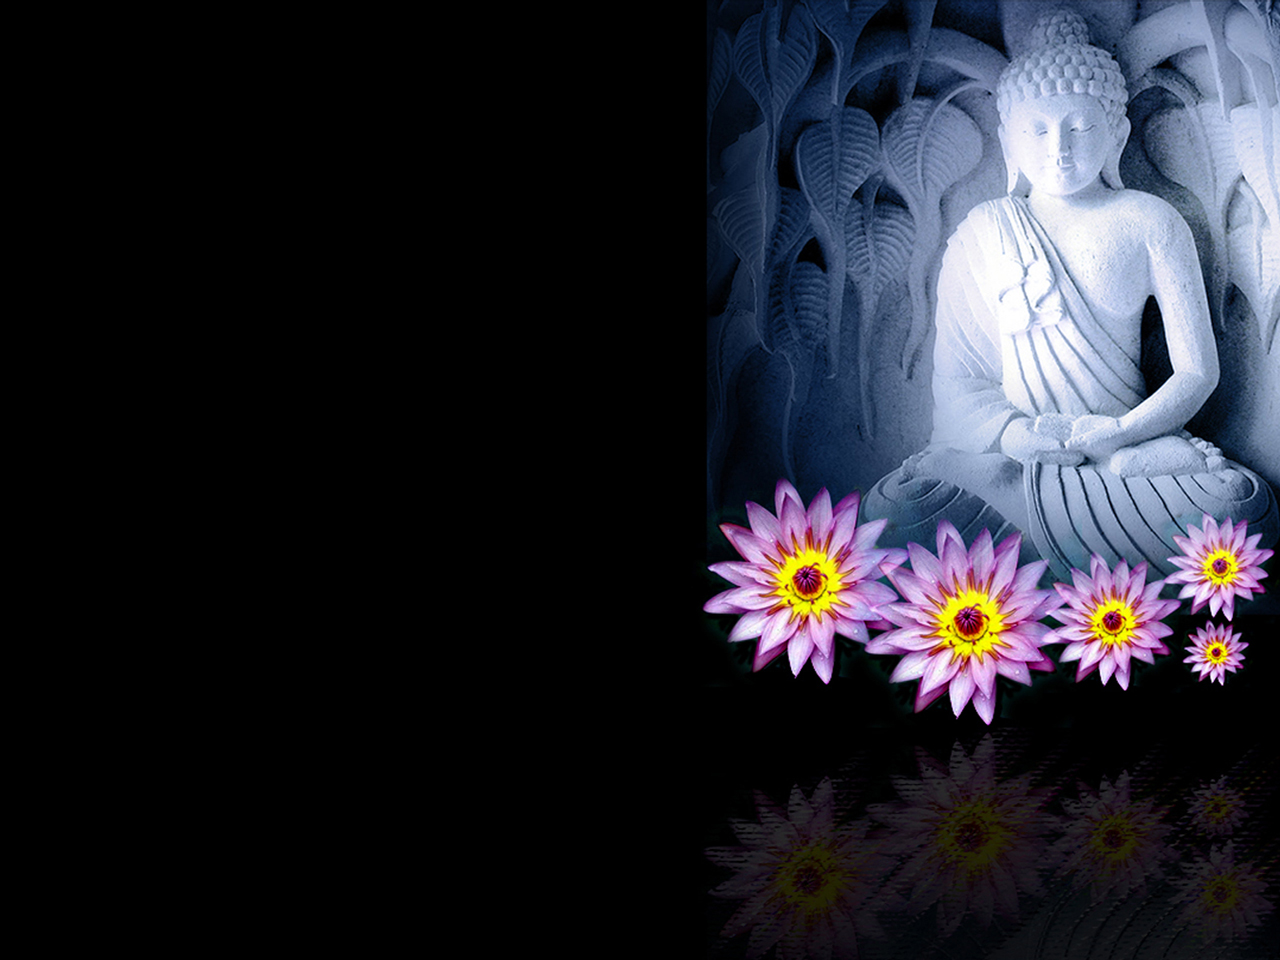 page size 1280x960 desktop wallpaper of buddha purnima day 1280x960